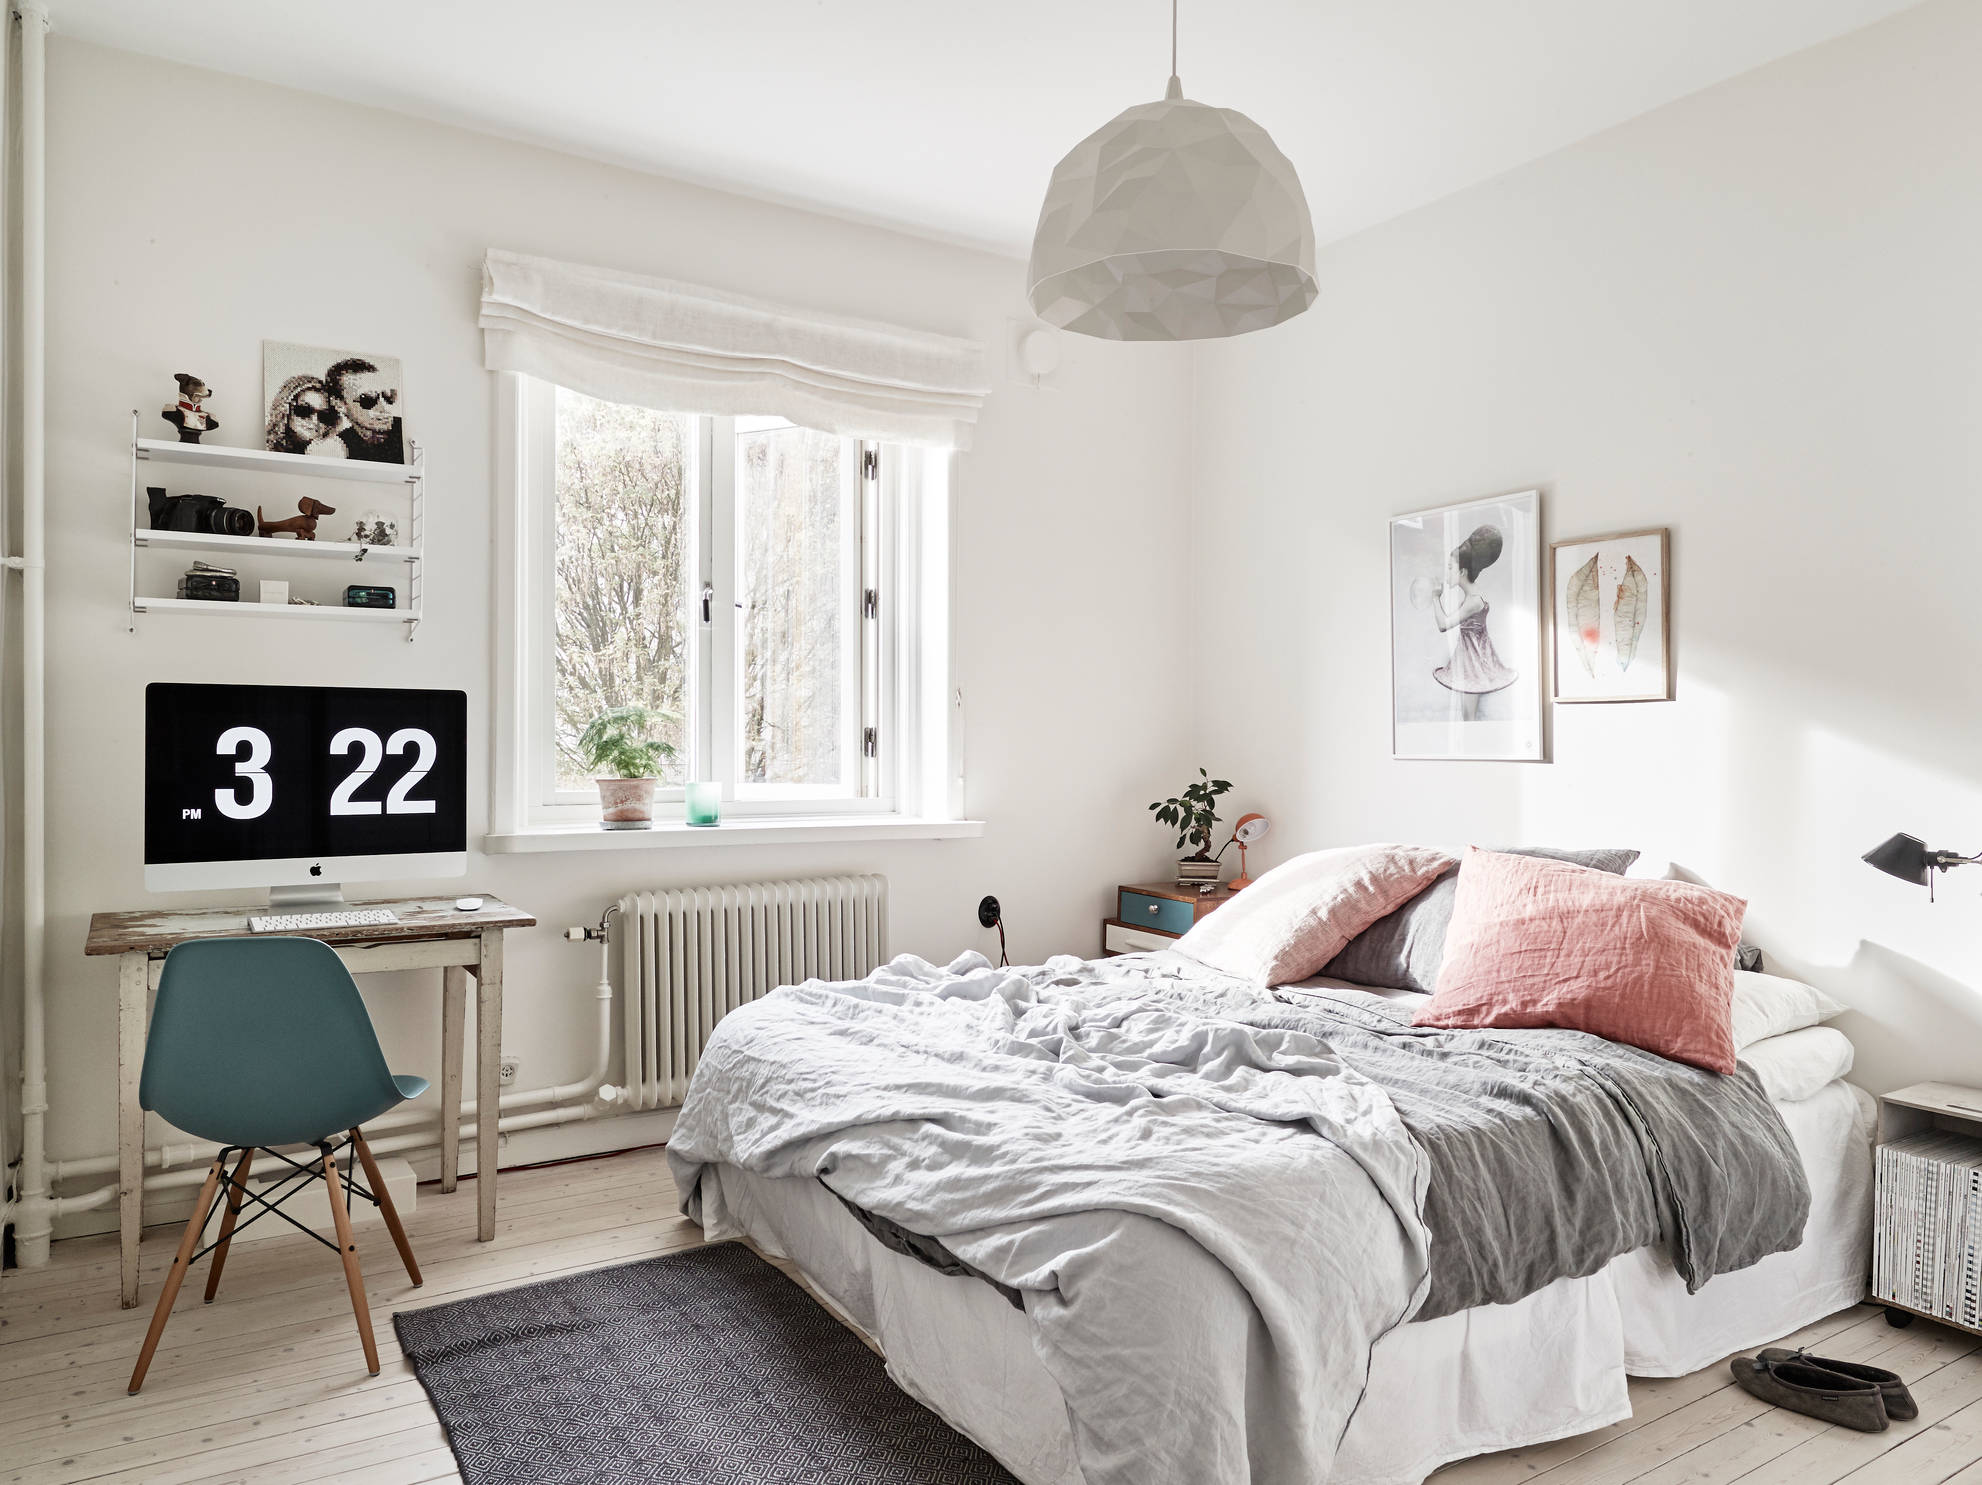 Dreamy bedroom and vintage elements coco lapine - Deco chambre jeune fille ...